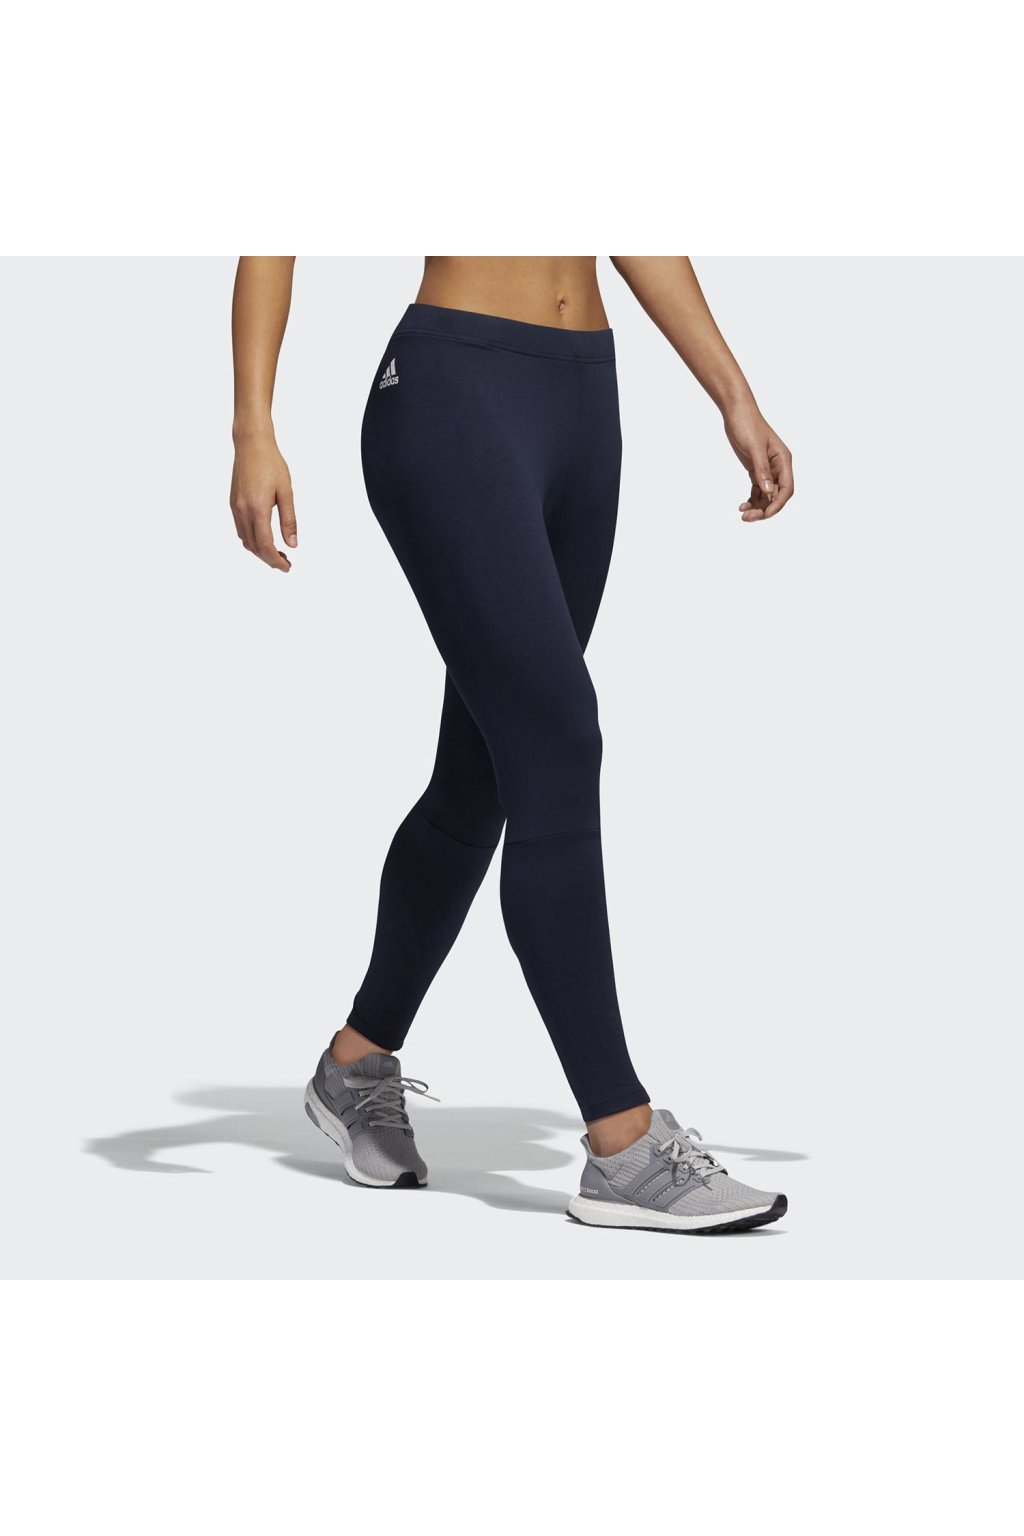 Dámske legíny Adidas Performance Women's Essentials Linear Tights CF8870